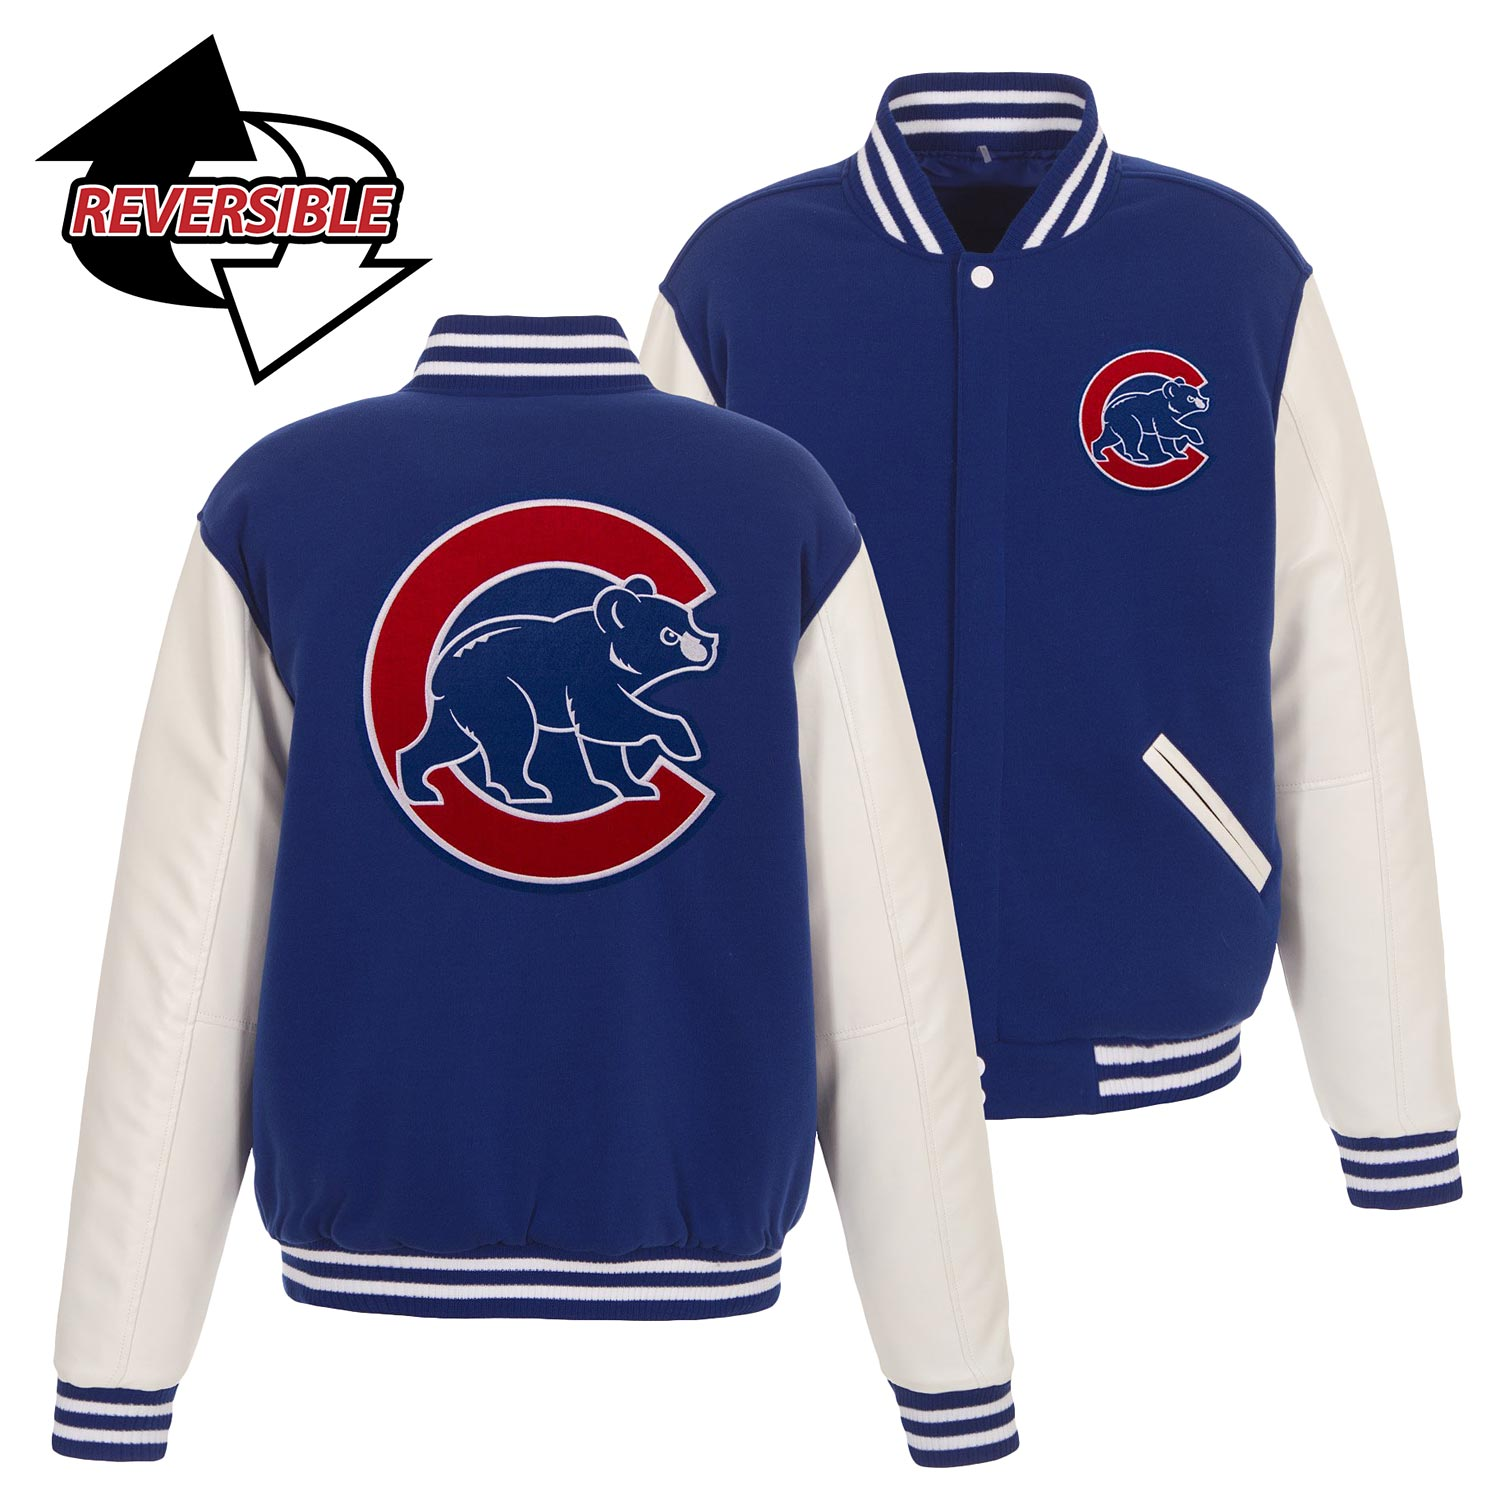 Chicago Cubs Walking Bear Reversible Jacket